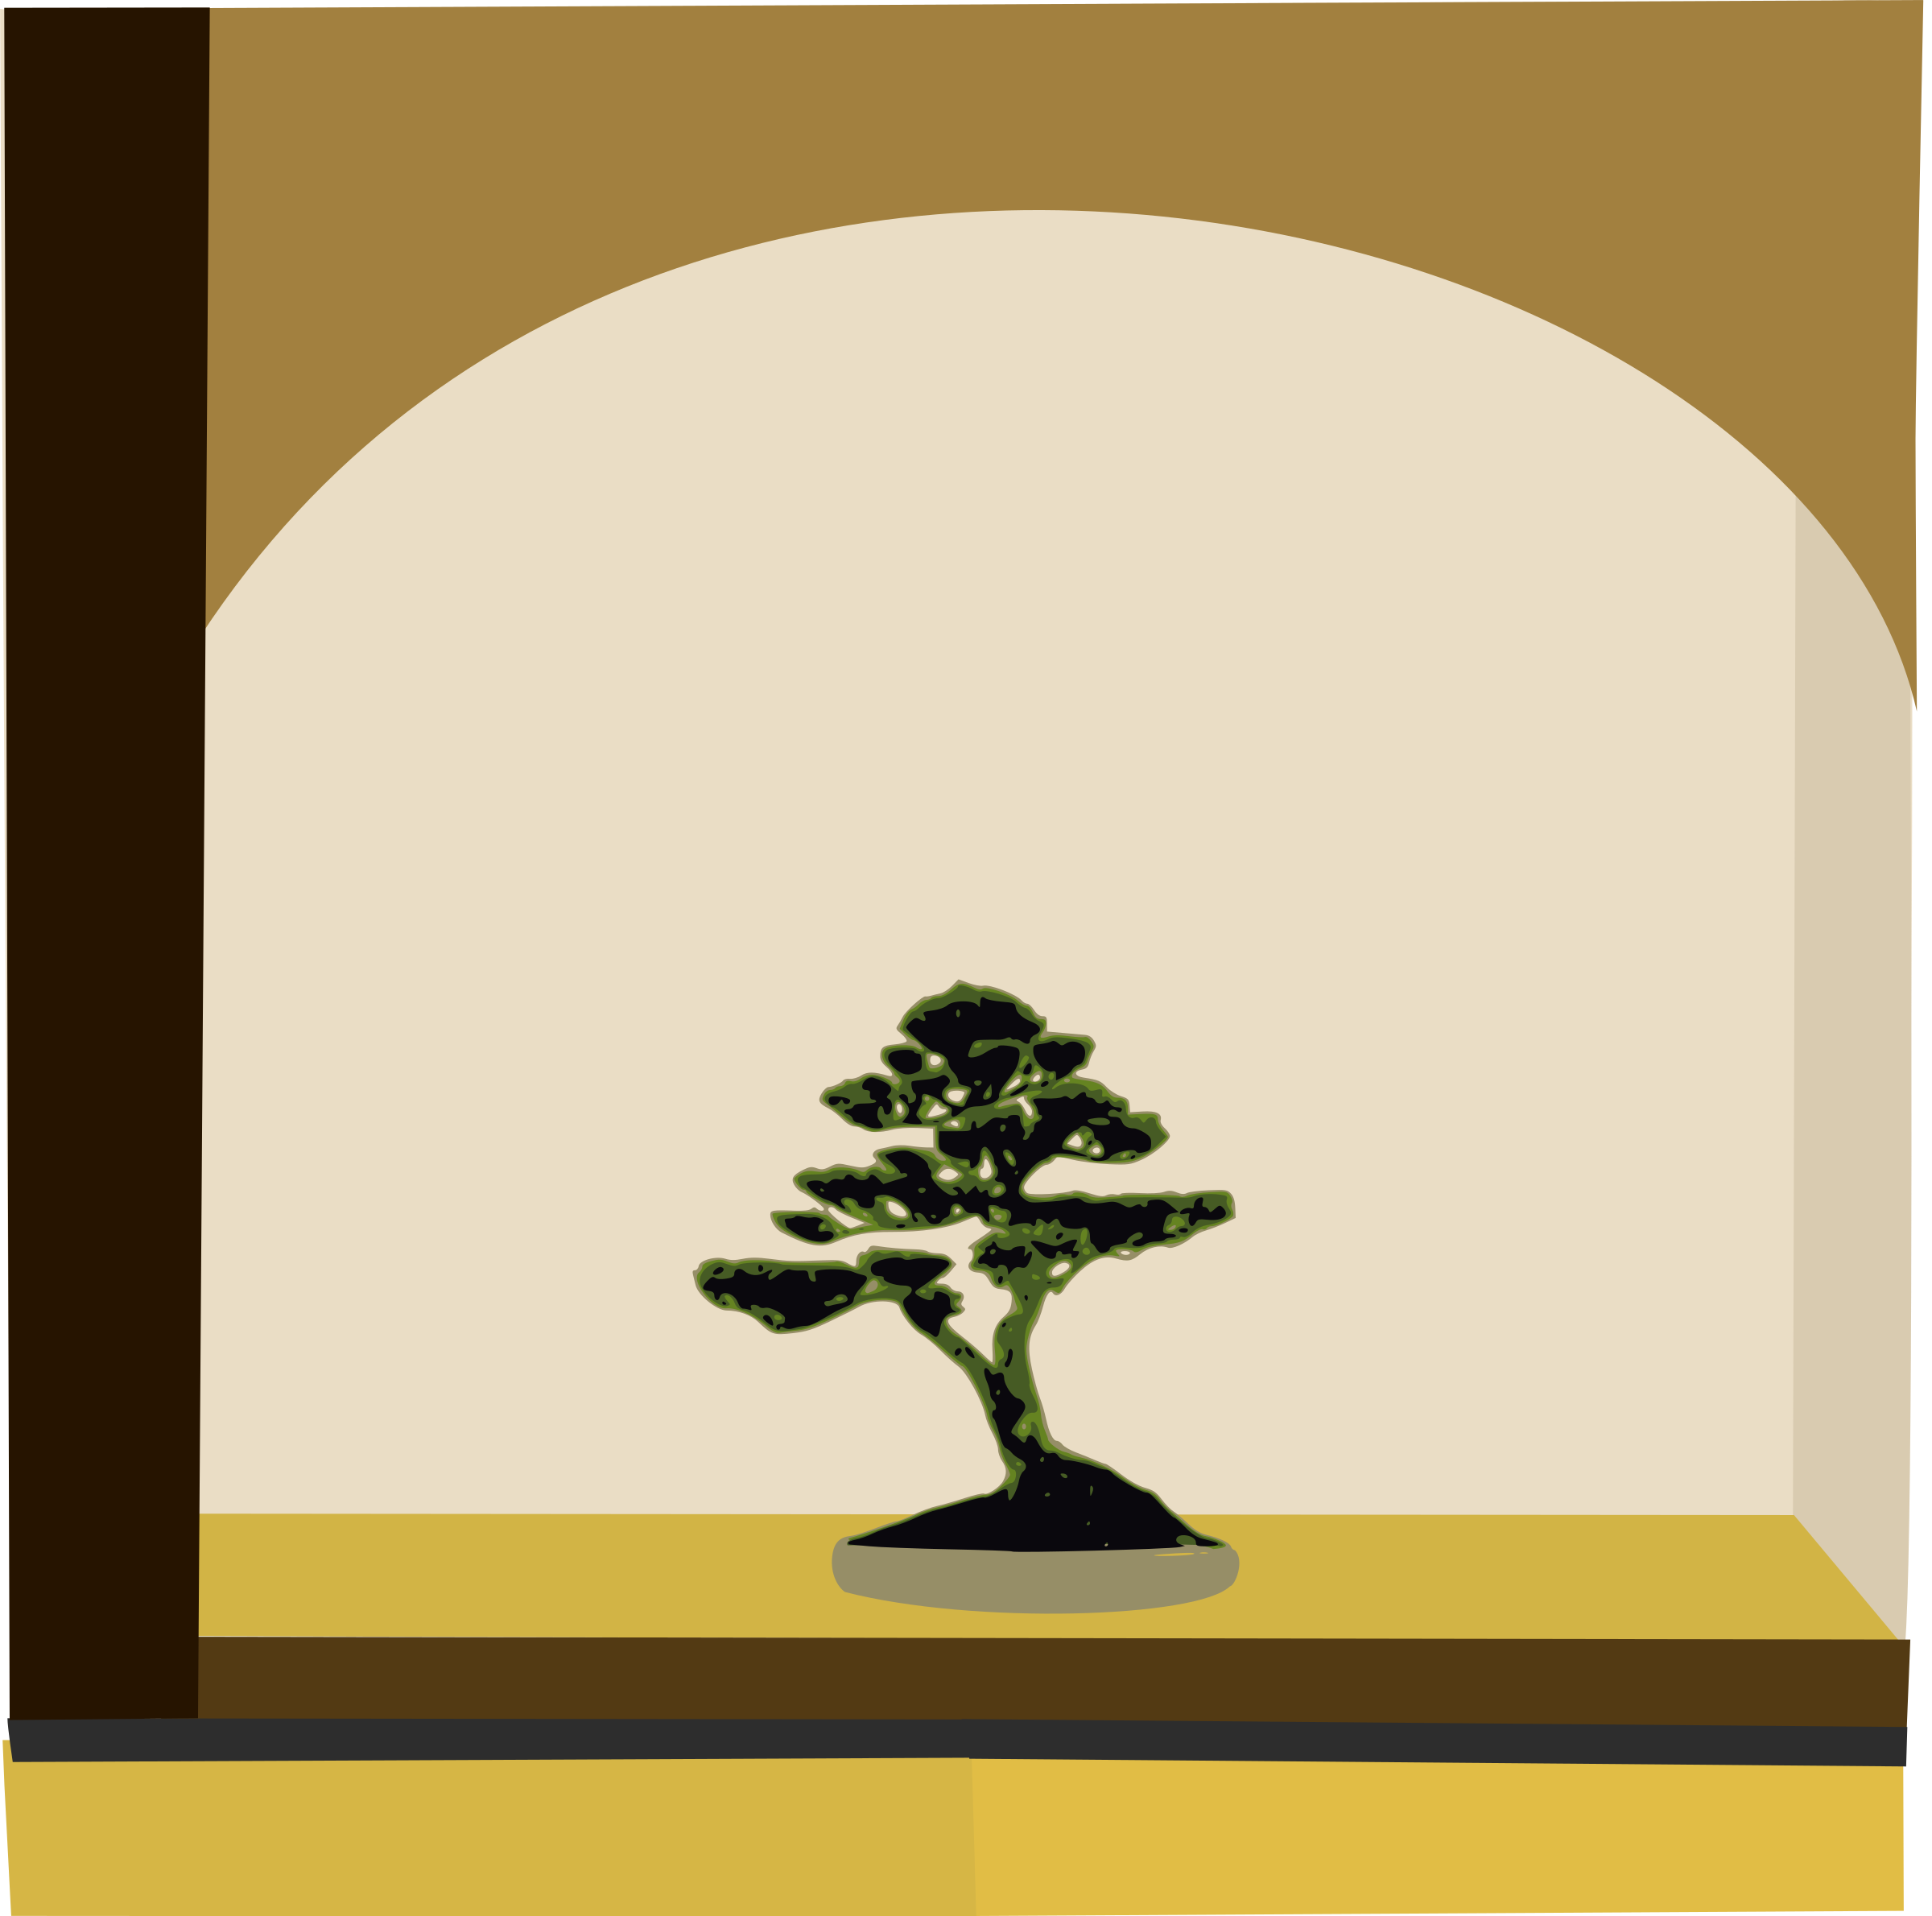 tokonoma with bonsai by yamachem